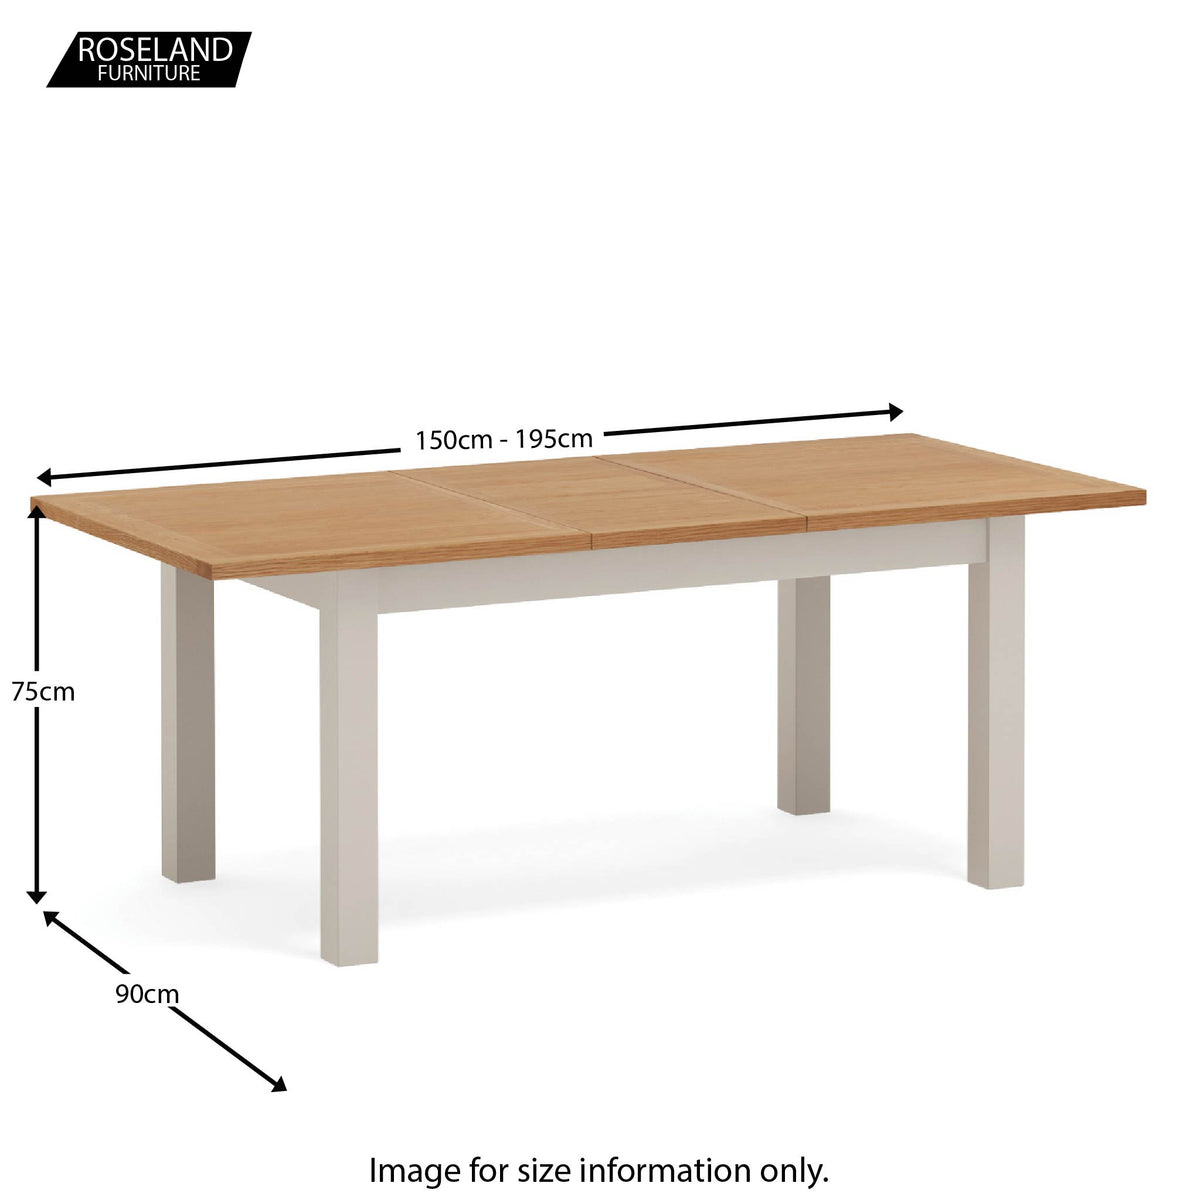 Dorset Stone Grey Small Extending Dining Table size guide